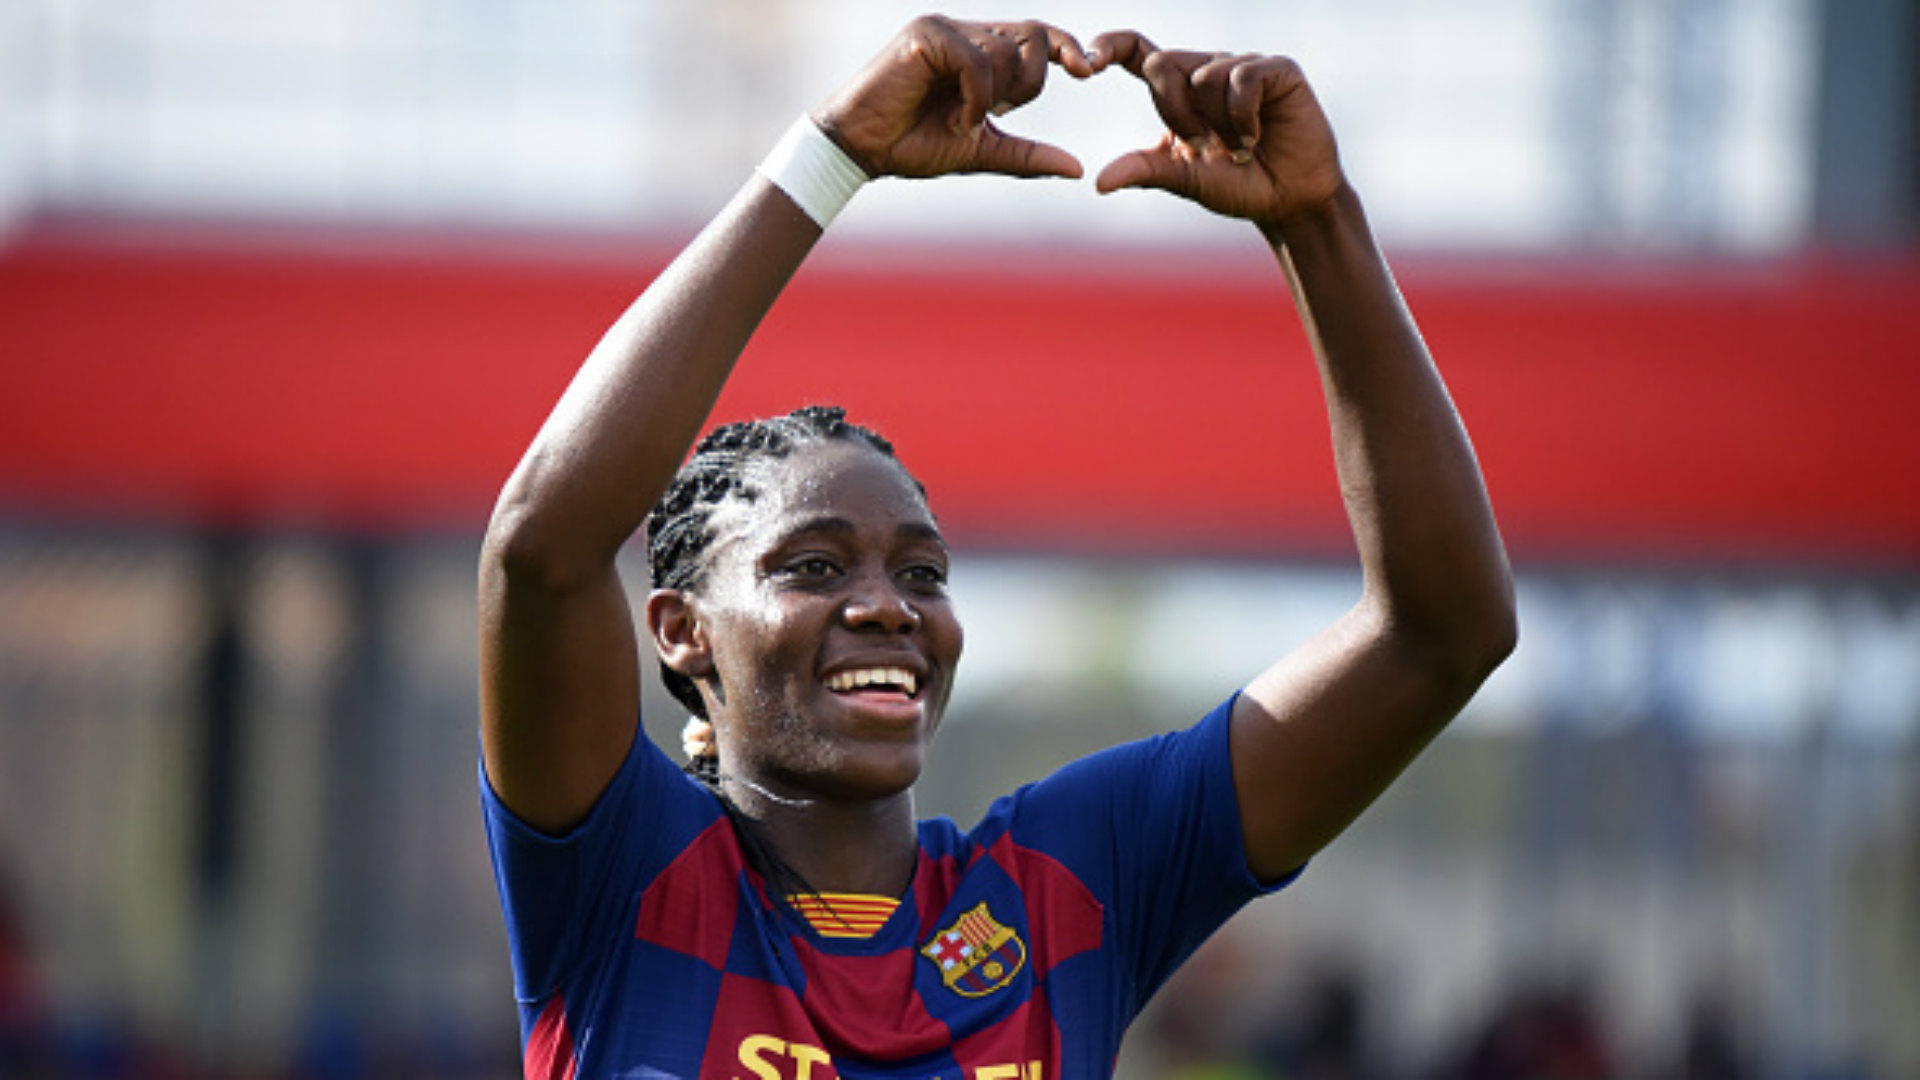 'It's a good move' - Oshoala backs Nigeria's bid for 2020 African Women's Cup of Nations